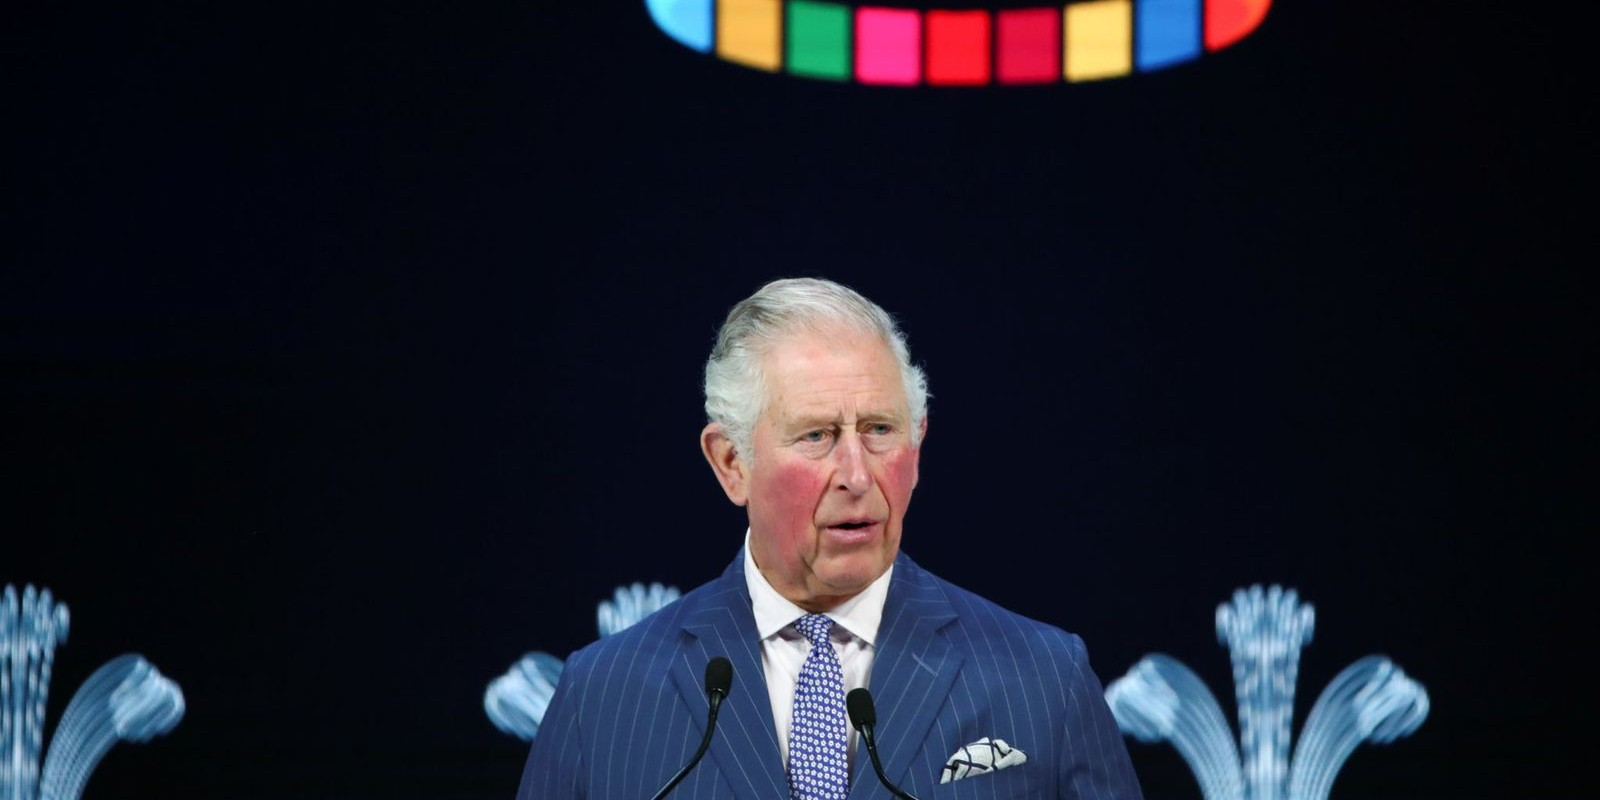 Prince Charles launches Sustainable Markets Initiative at Davos: 'The time to act is now'